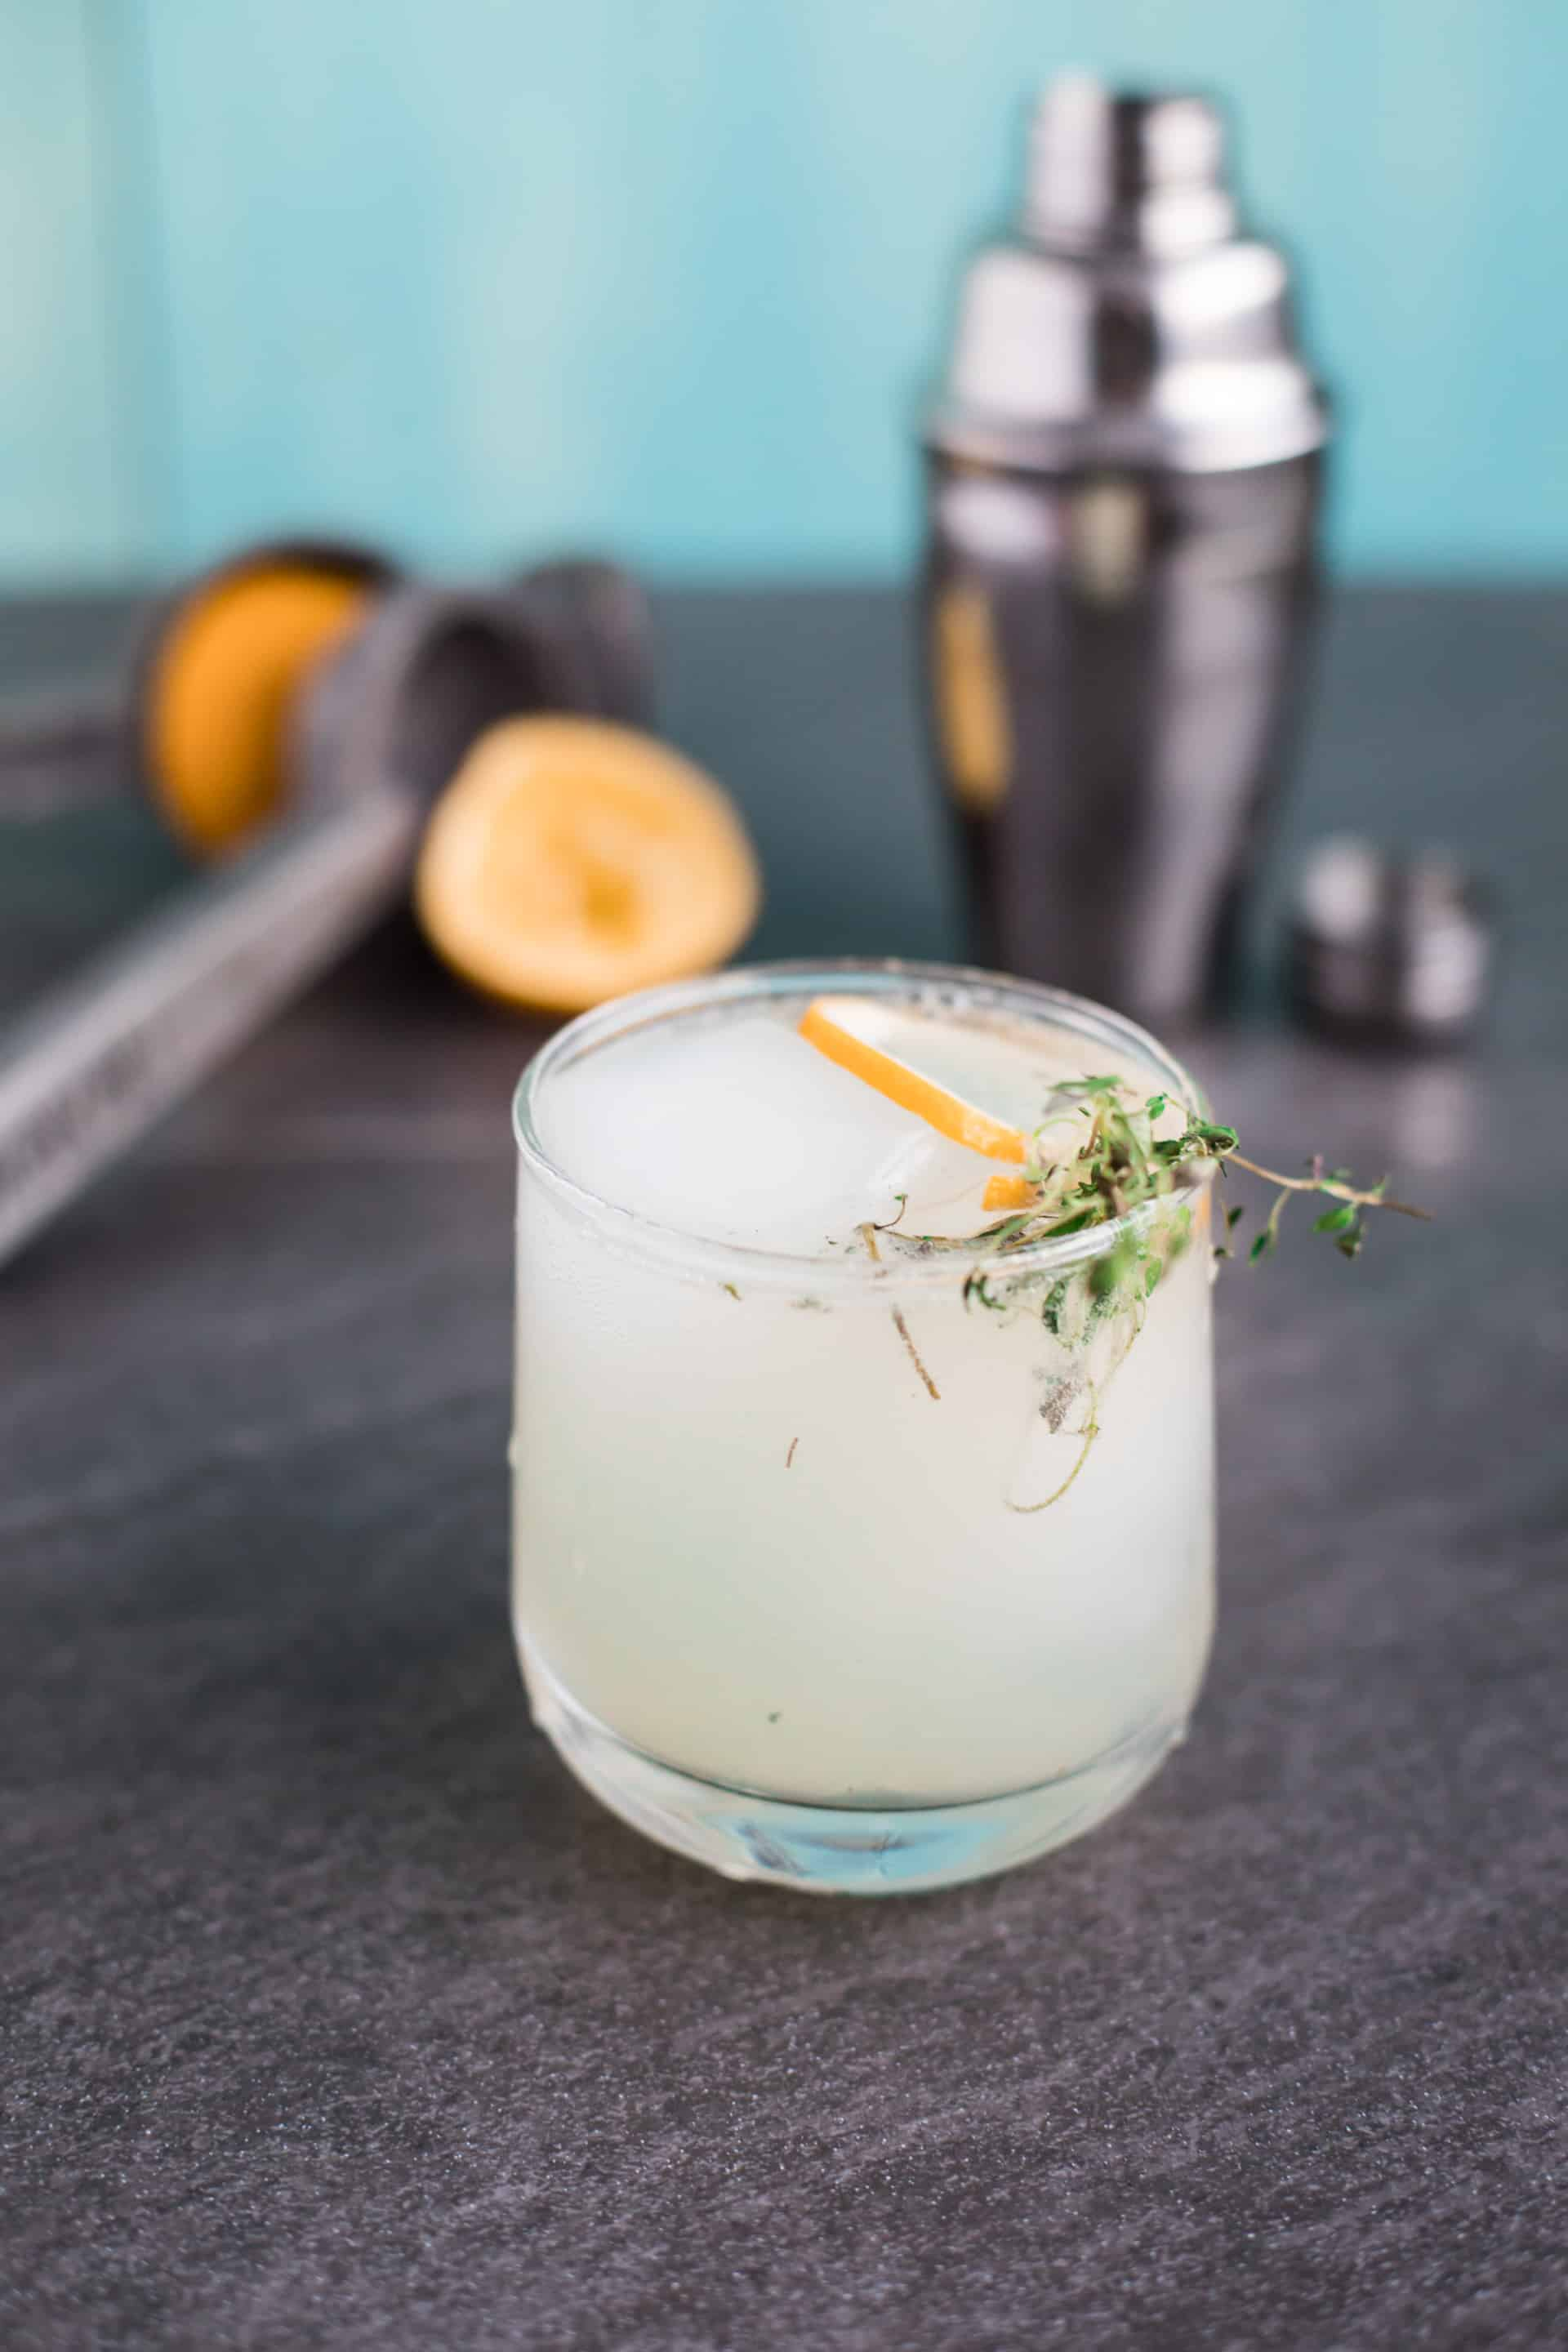 The Party Thyme - A Gin and Limoncello Cocktail from LimoncelloQuest